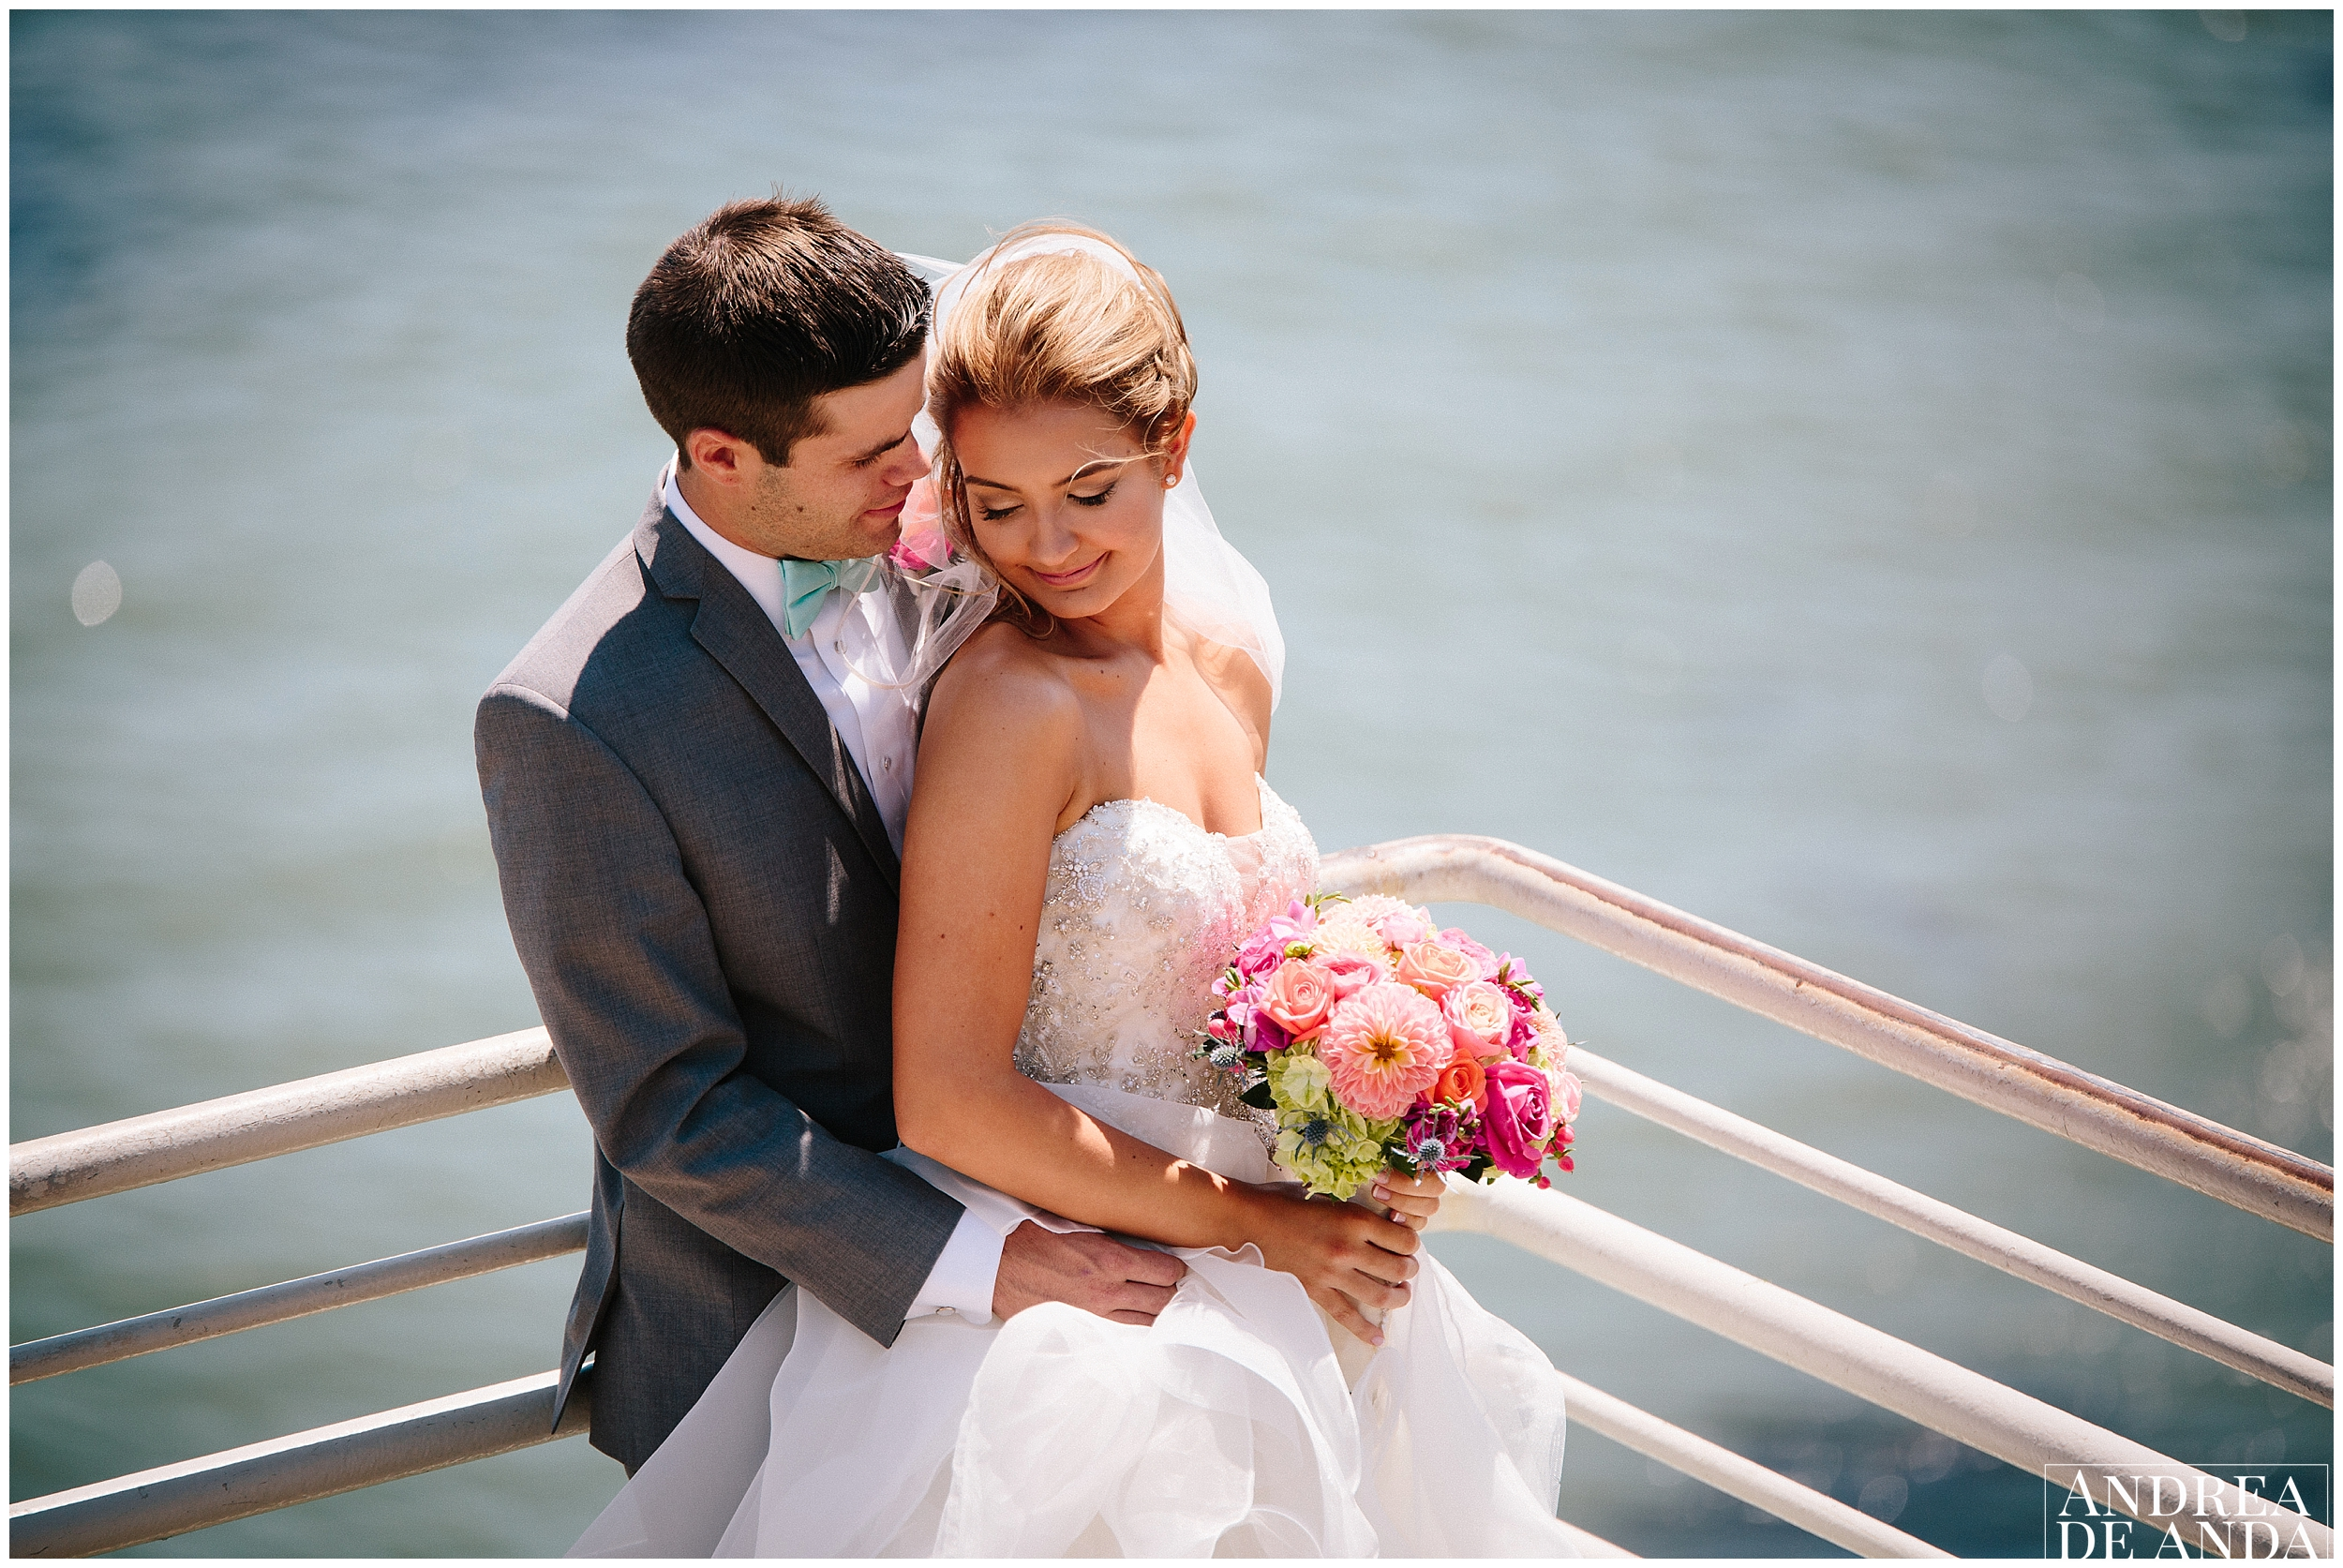 Bride and Groom Creative Portraits at Pismo Beach